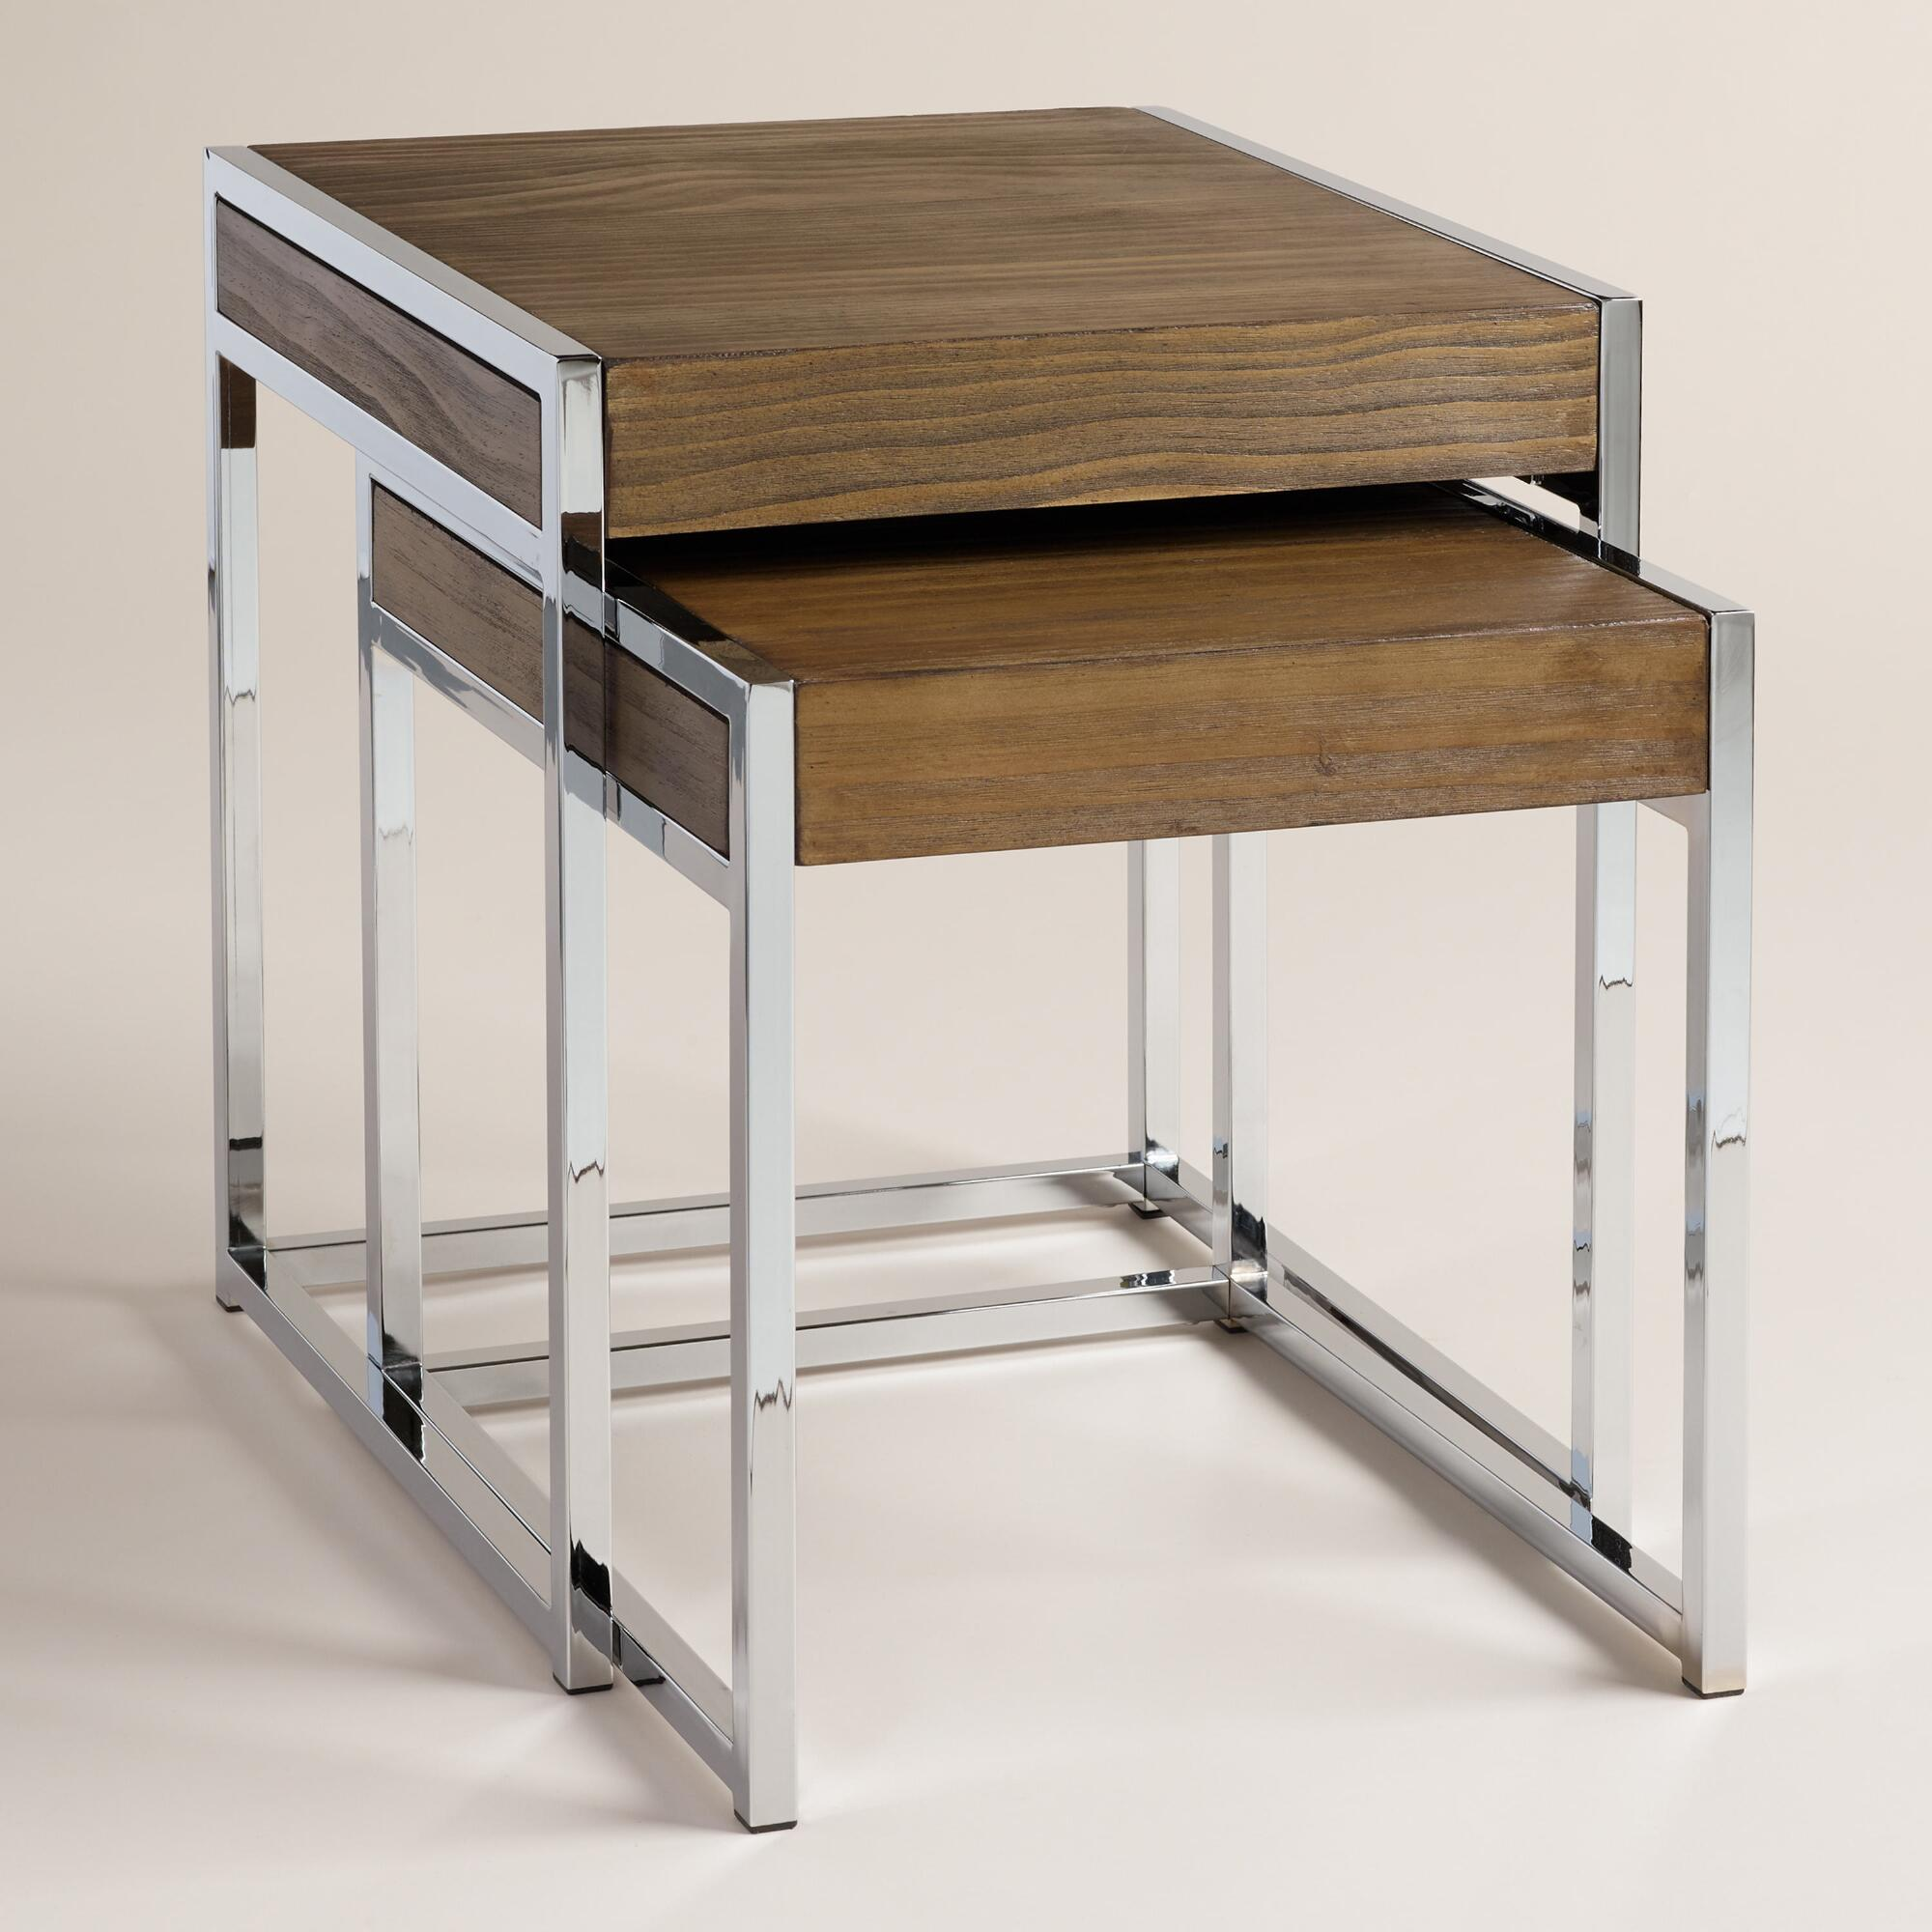 tail vise the super awesome small distressed end table ture wood and chrome pierceson nesting tables set world market iipsrv fcgi kohls free shipping coupon code rattan chair